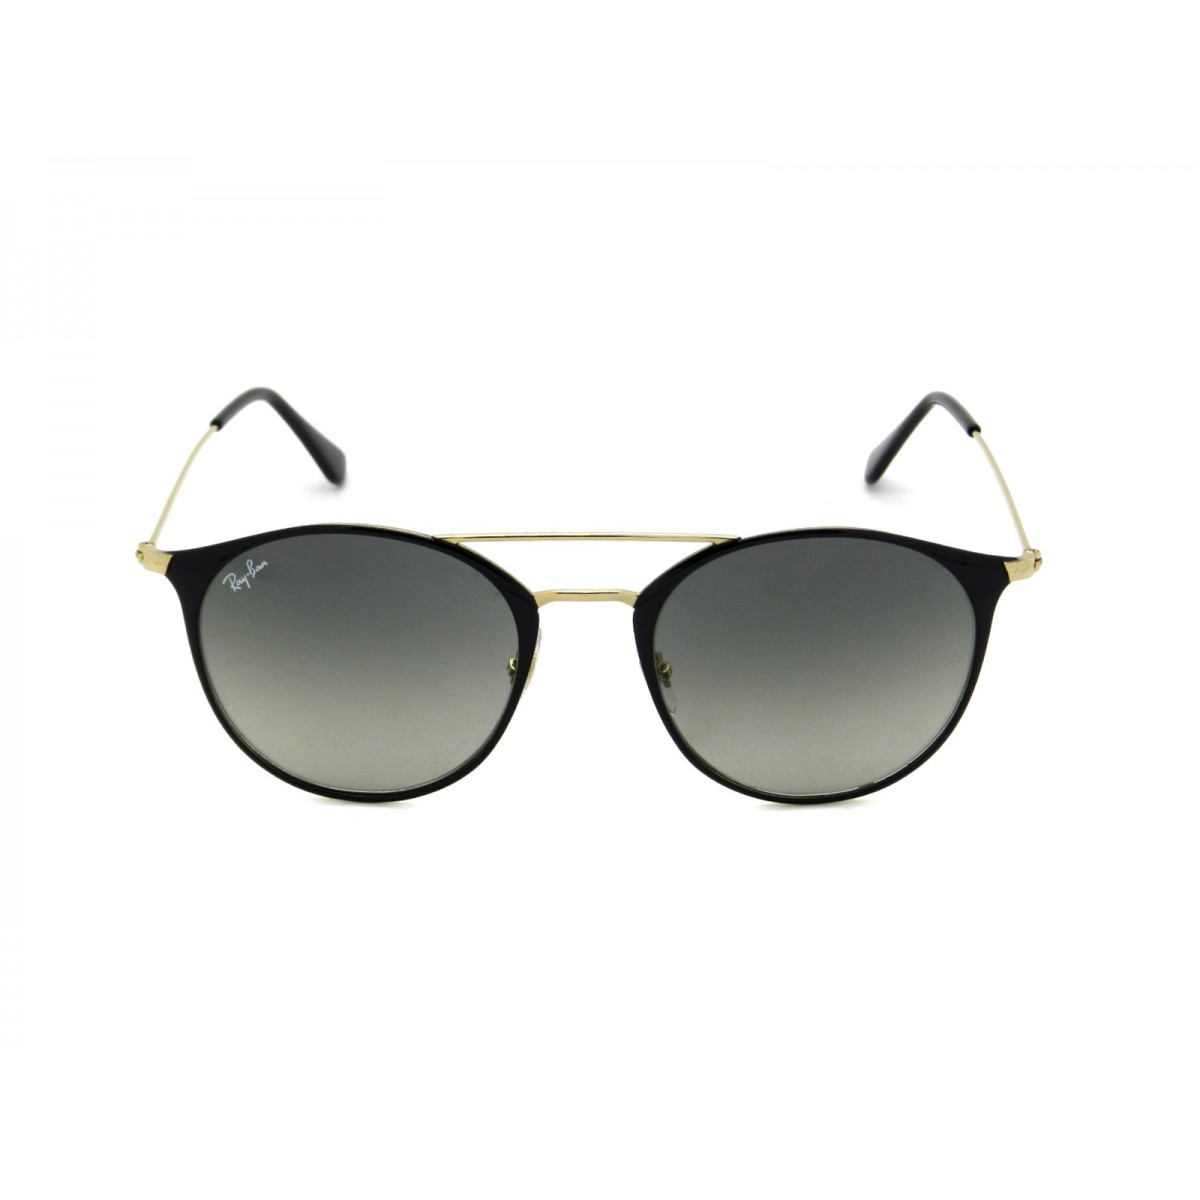 212eca2aff8ac Ray Ban Black Gold Round Unisex Sunglasses RB3546-187 71-52 ...